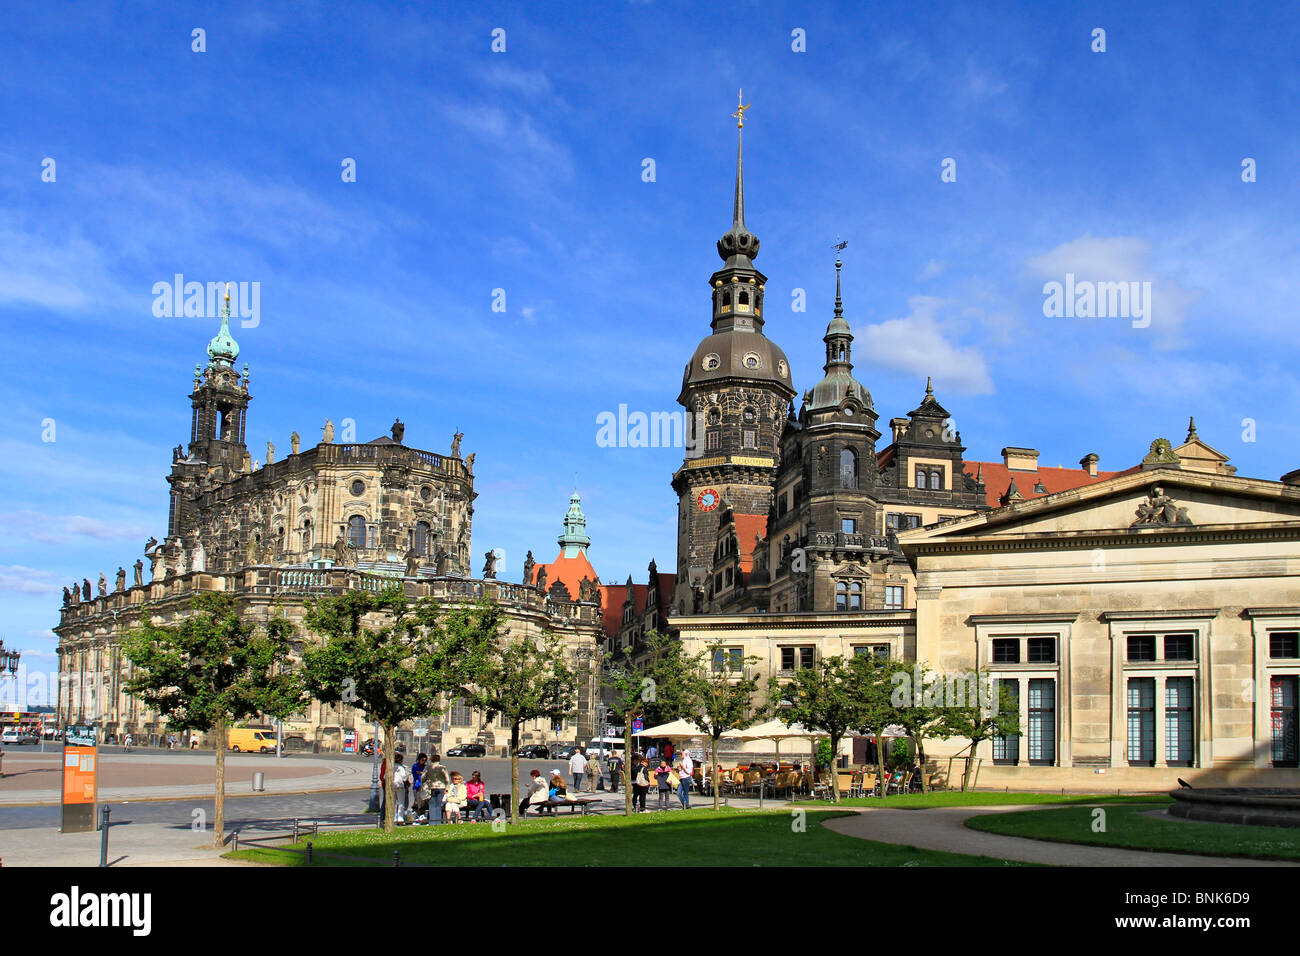 Catholic Hofkirche, Dom, built 1739_1751 in baroque style and Residenz Castle, Germany, Saxony, Dresden - Stock Image